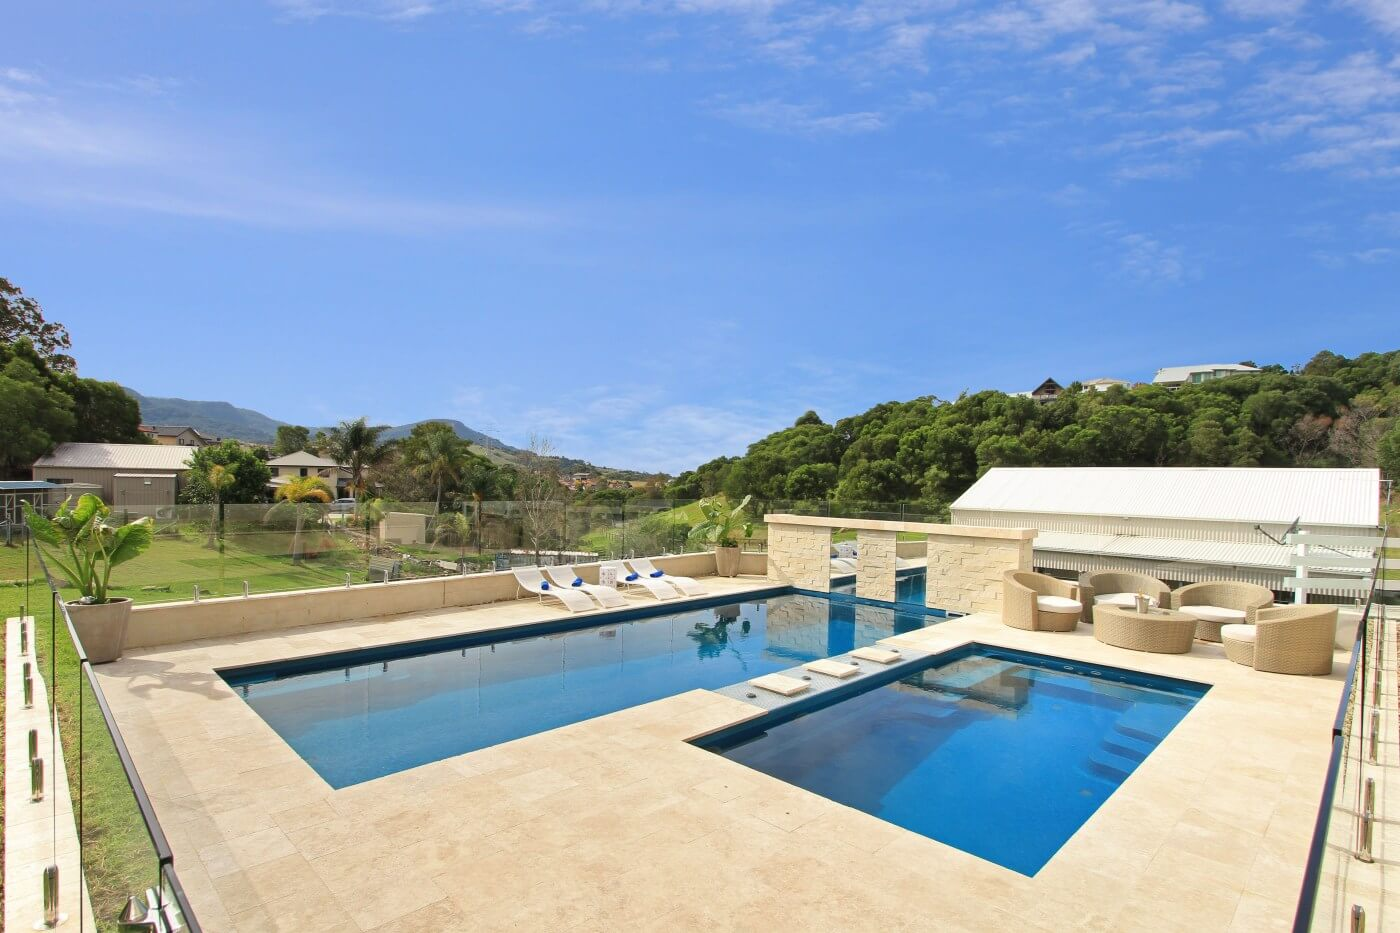 The Best Pool Design Ideas for Your Backyard - Compass Pools Australia